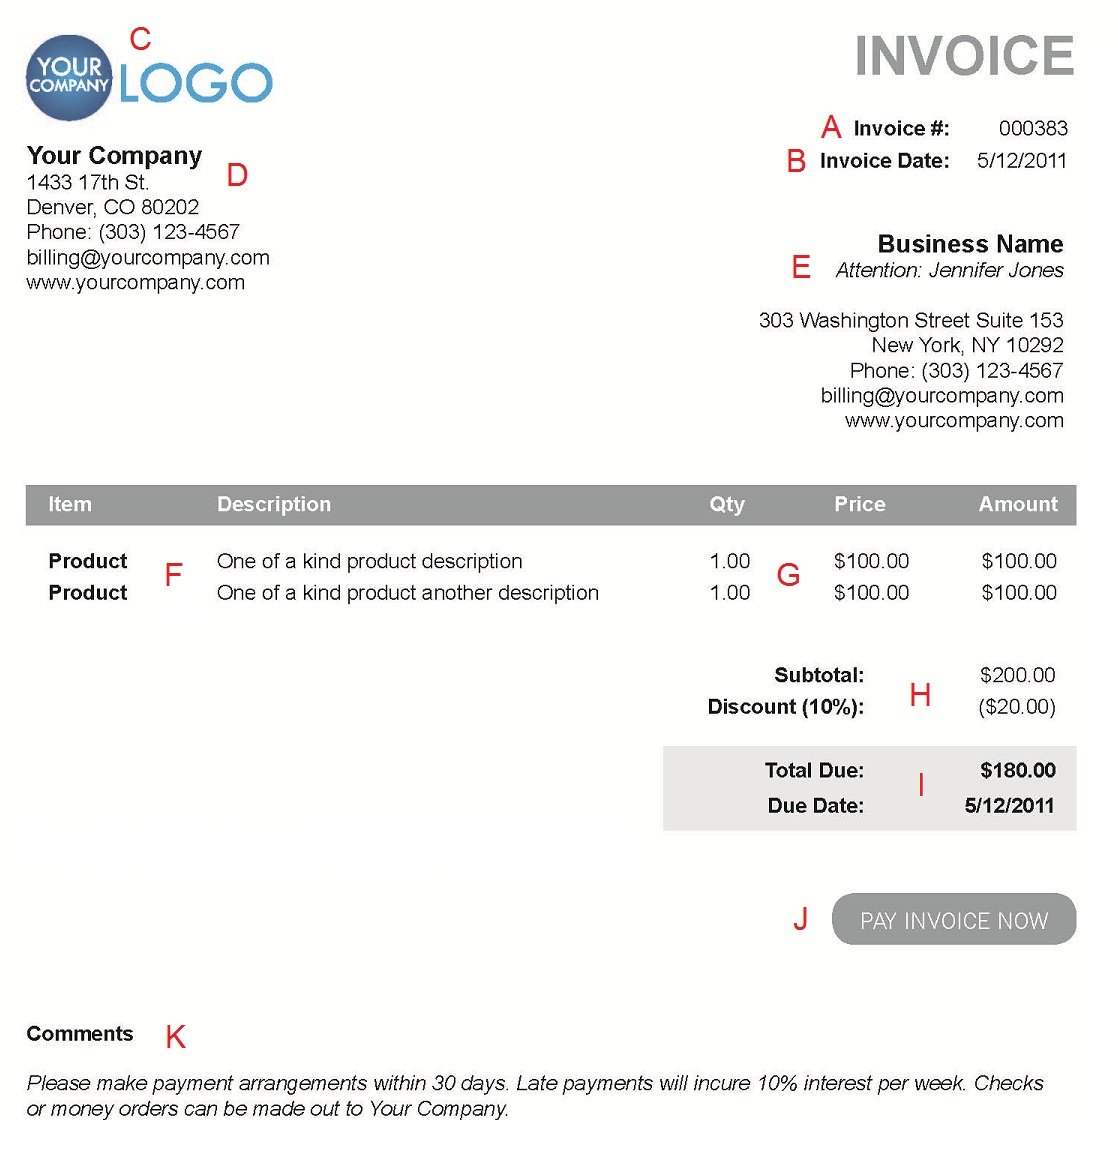 Angkajituus  Prepossessing The  Different Sections Of An Electronic Payment Invoice With Exquisite A  With Endearing Export Proforma Invoice Also Free Blank Printable Invoice In Addition Service Billing Invoice Template And Invoice With Vat As Well As  Honda Accord Exl Invoice Price Additionally Track Invoices From Paysimplecom With Angkajituus  Exquisite The  Different Sections Of An Electronic Payment Invoice With Endearing A  And Prepossessing Export Proforma Invoice Also Free Blank Printable Invoice In Addition Service Billing Invoice Template From Paysimplecom